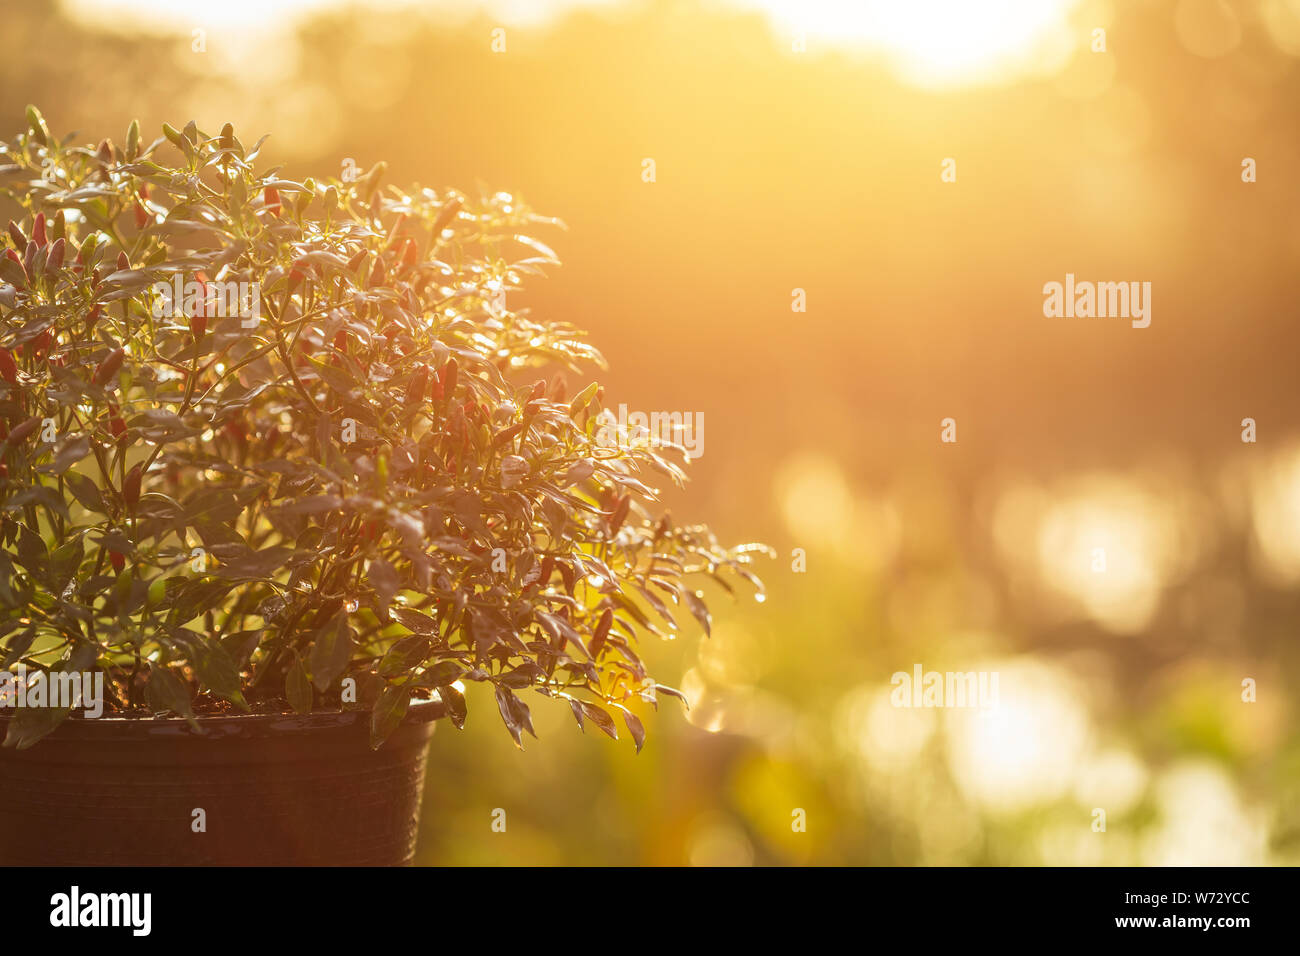 Small Fresh Thai Chilli Tree In Garden Pot In Garden At Morning Time With Blur And Sunlight Effect Stock Photo Alamy